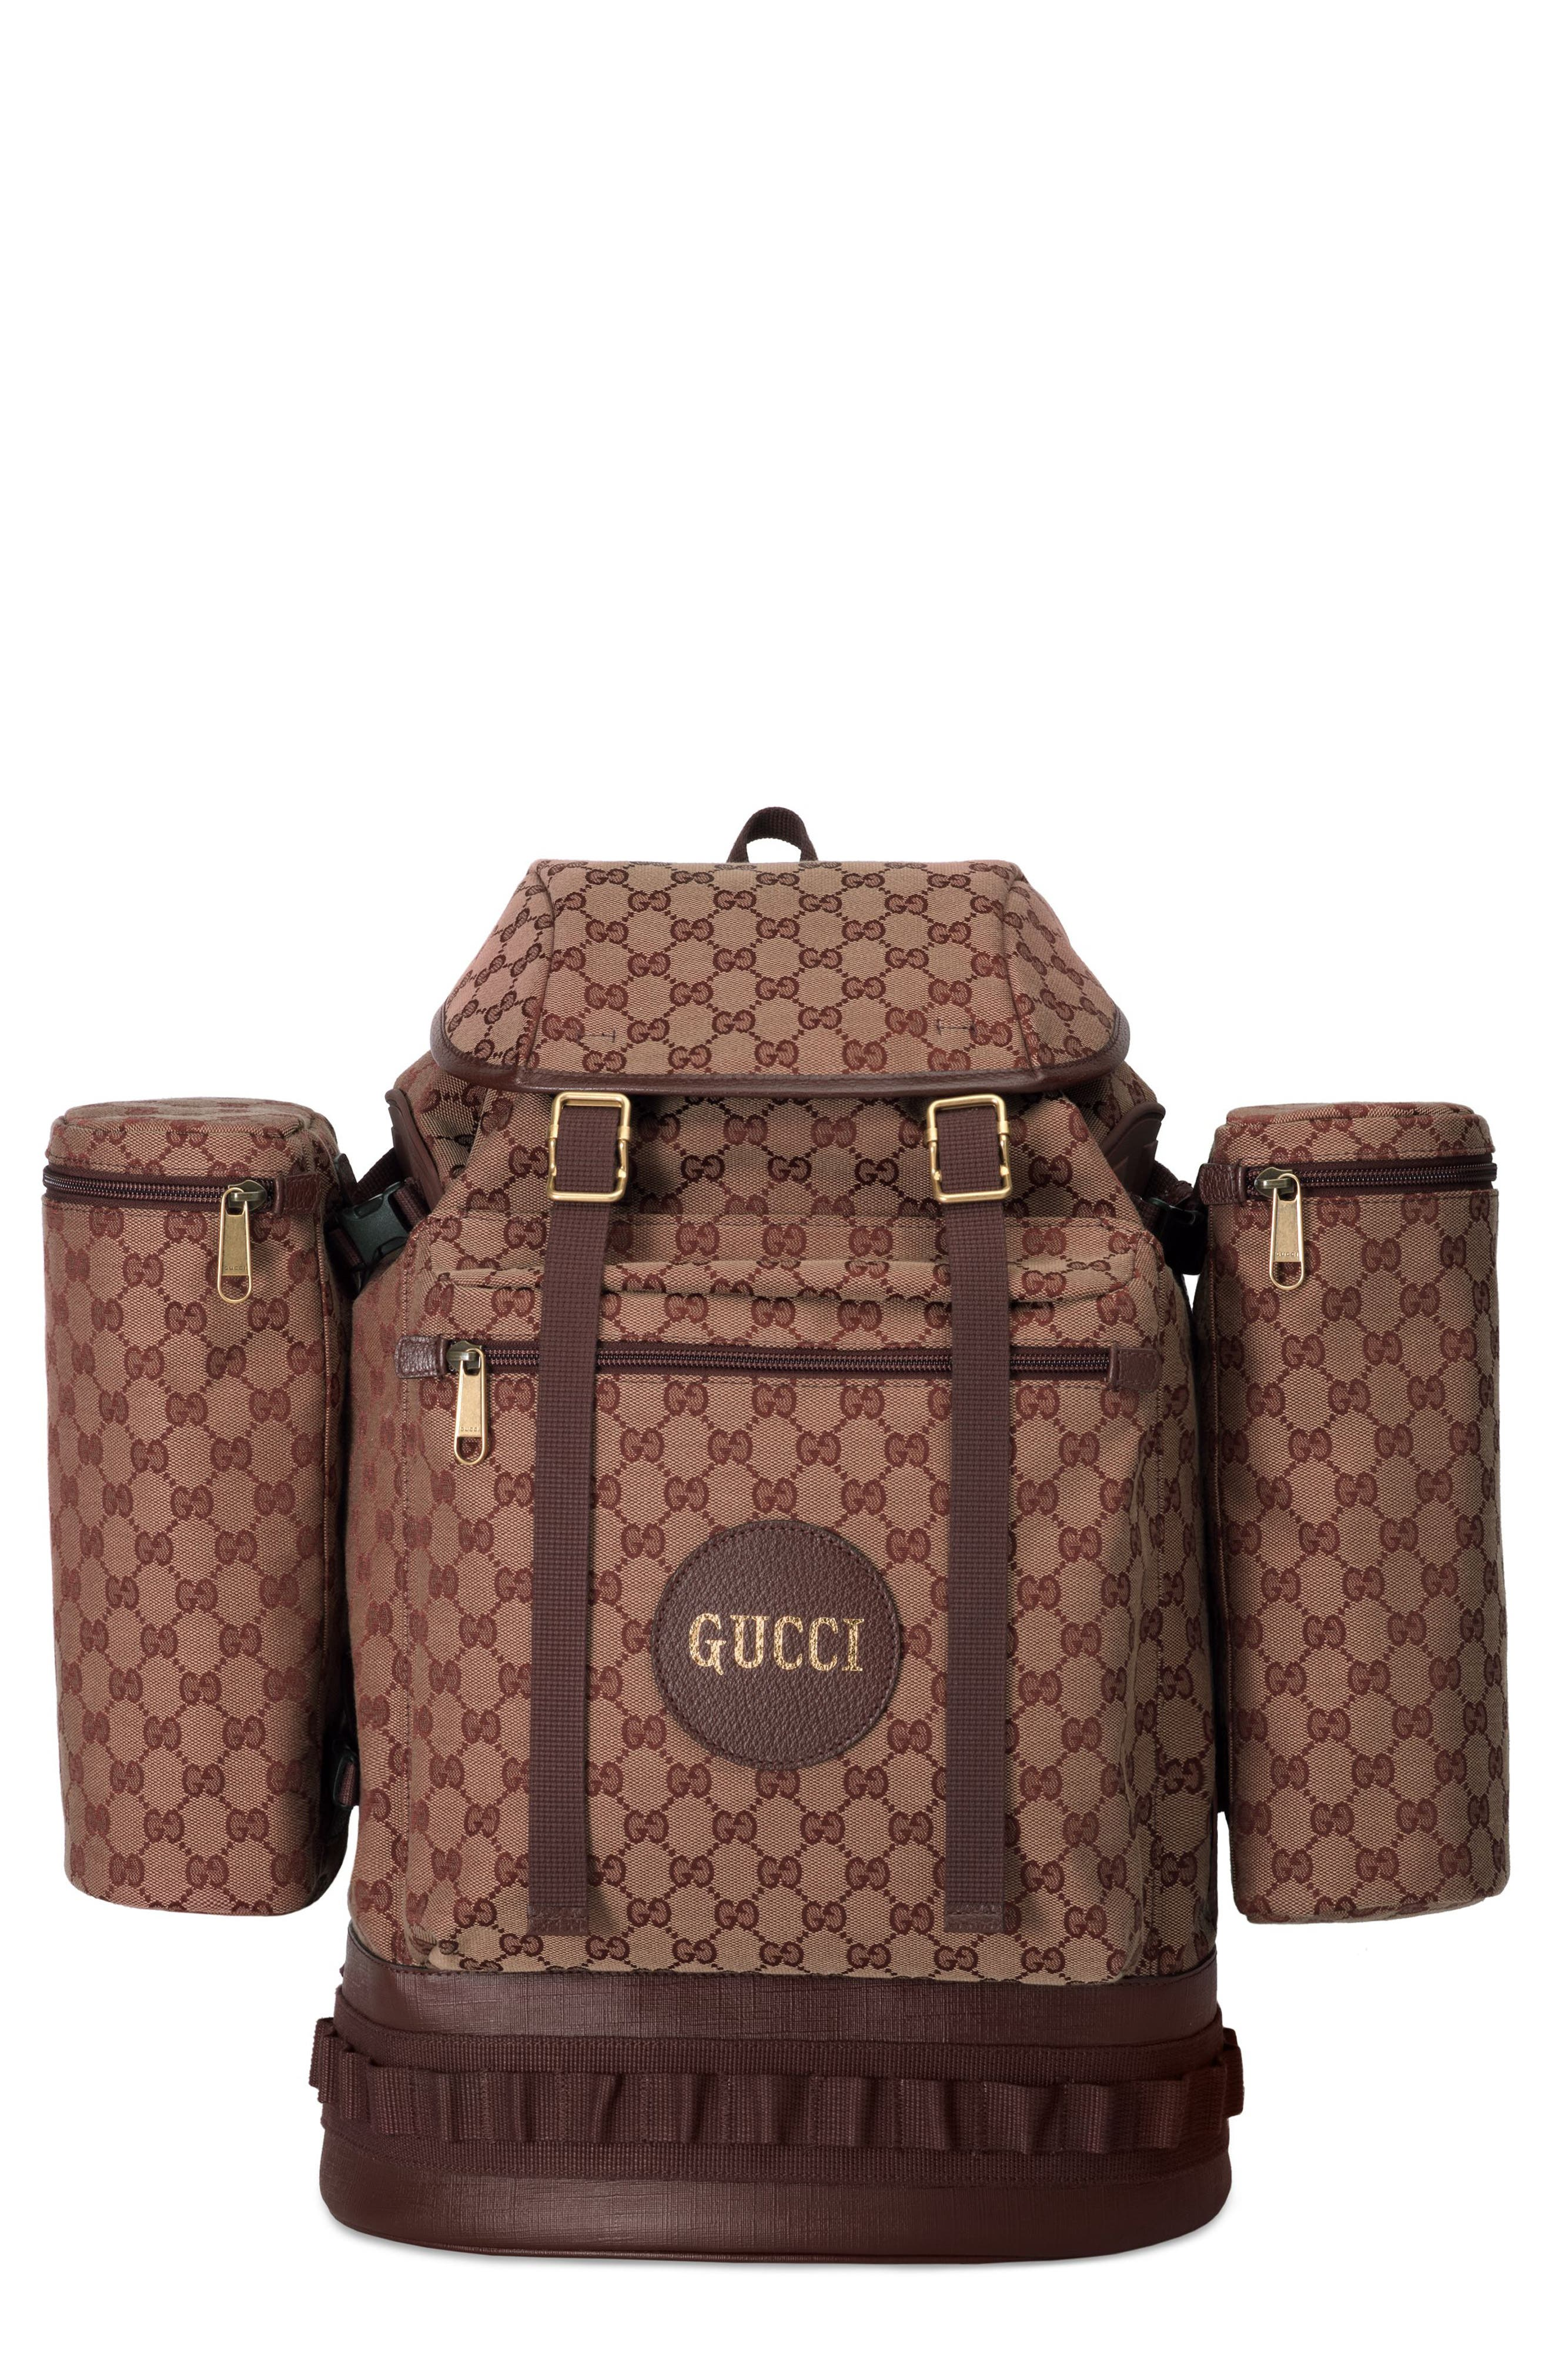 GUCCI, Large GG Canvas Backpack, Main thumbnail 1, color, BROWN RED